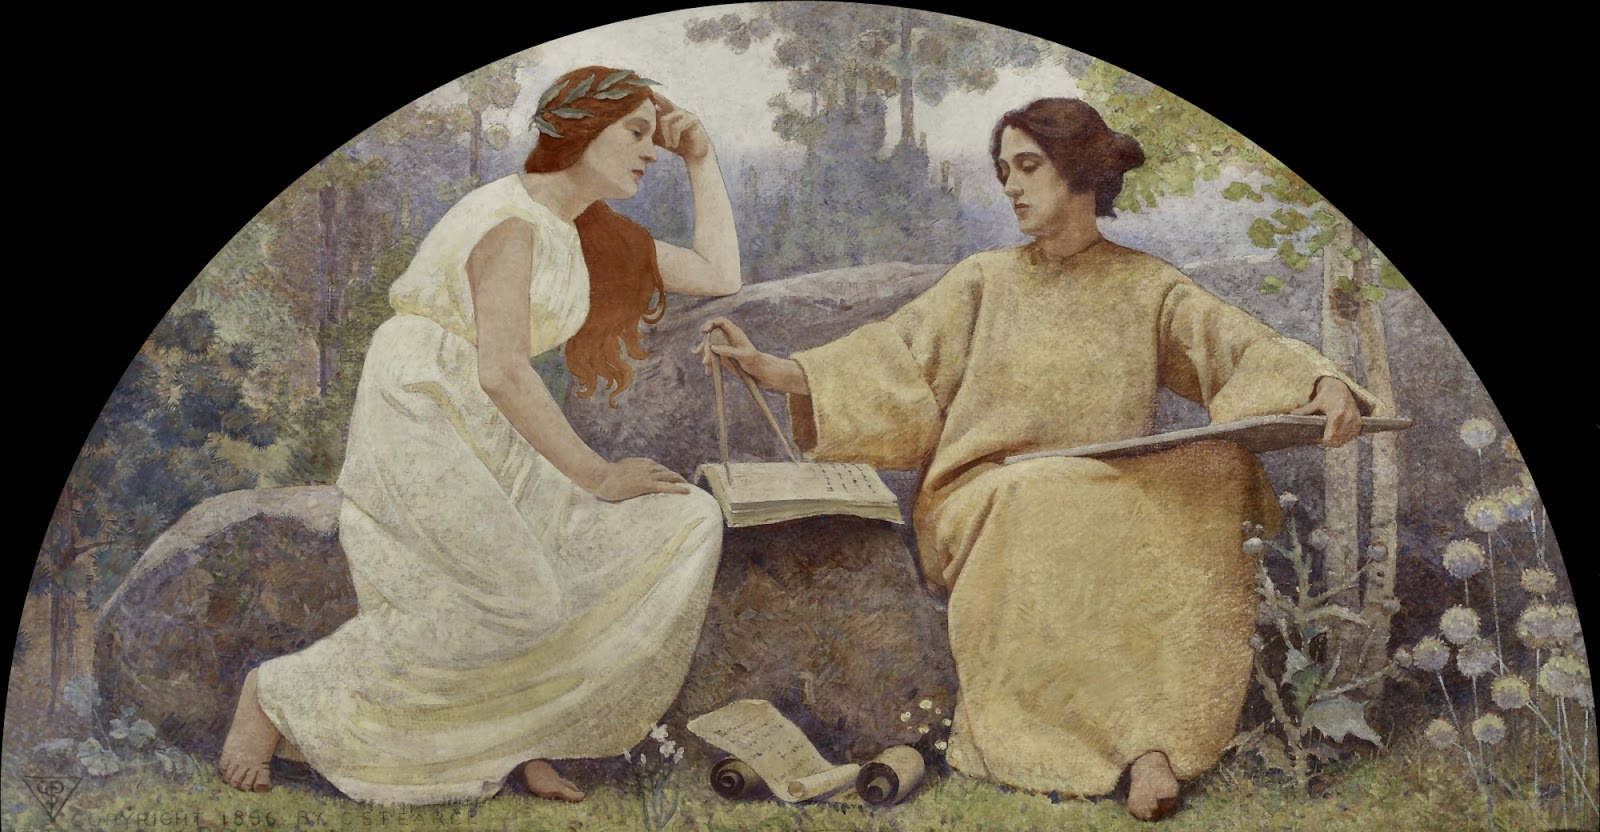 Charles  Sprague  Pearce  mural  library  of  congress  washington  study